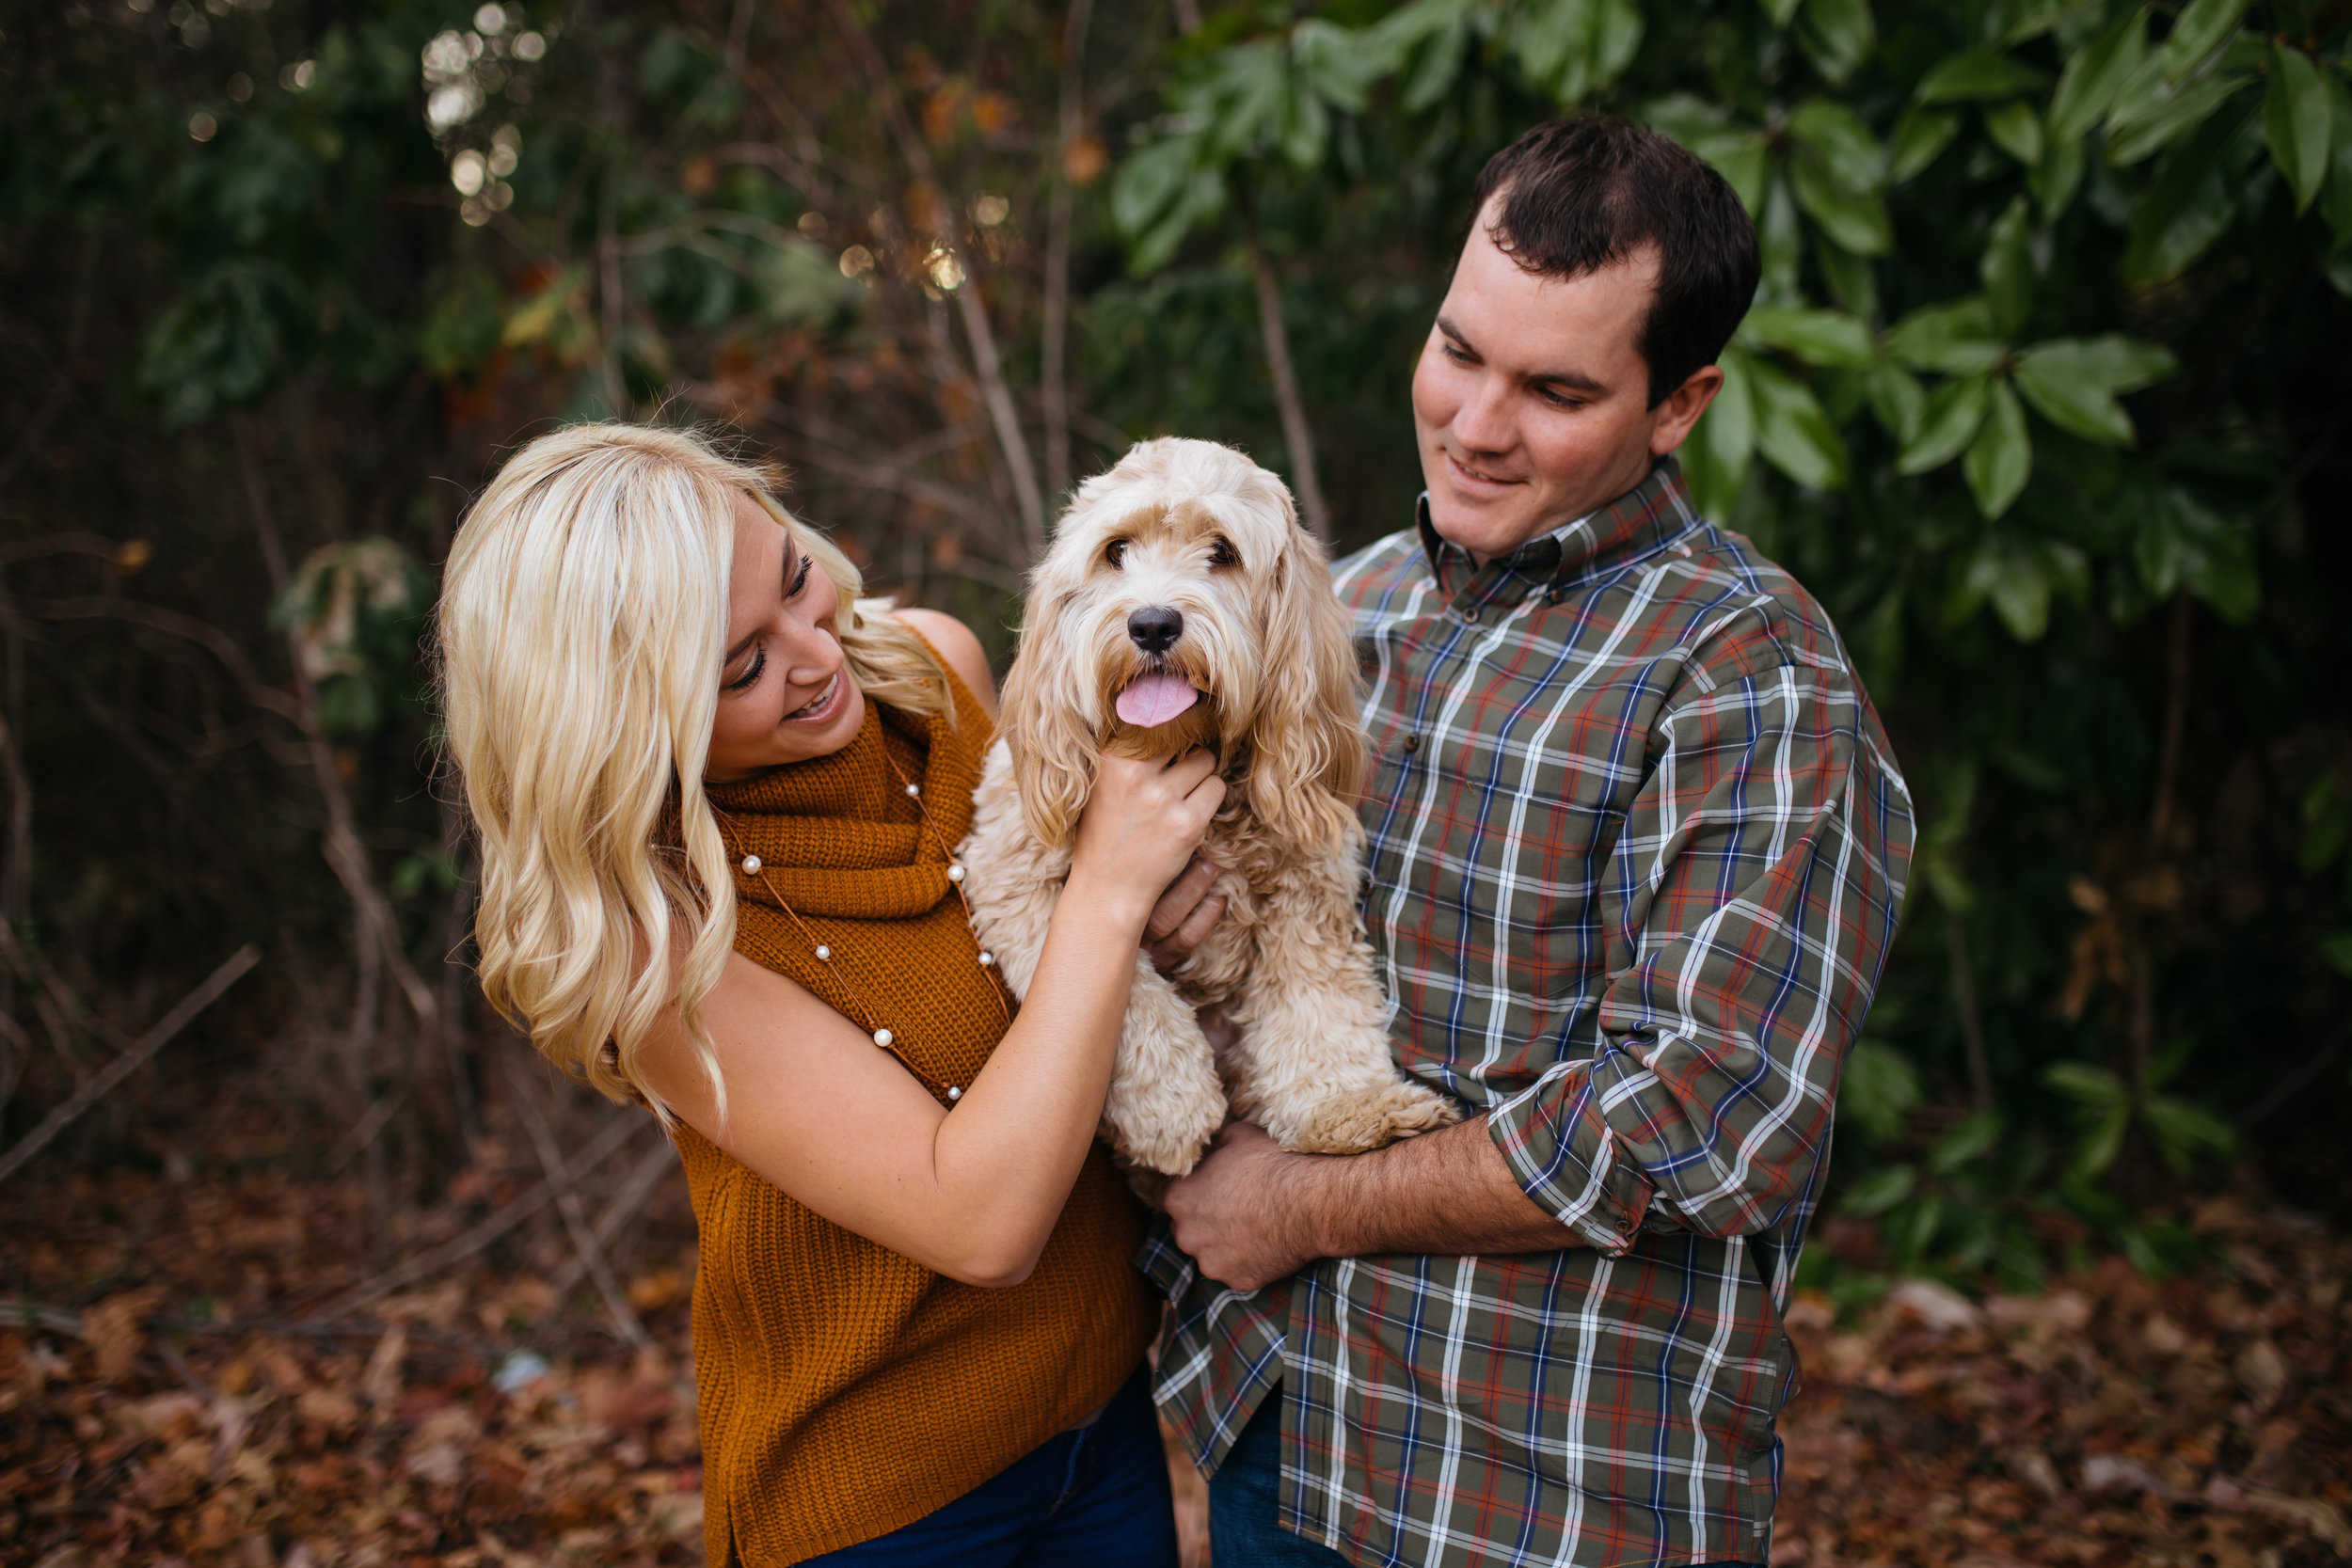 fall-family-photo-session-madison-huntsville-alabama-mary-colleen-photography-11